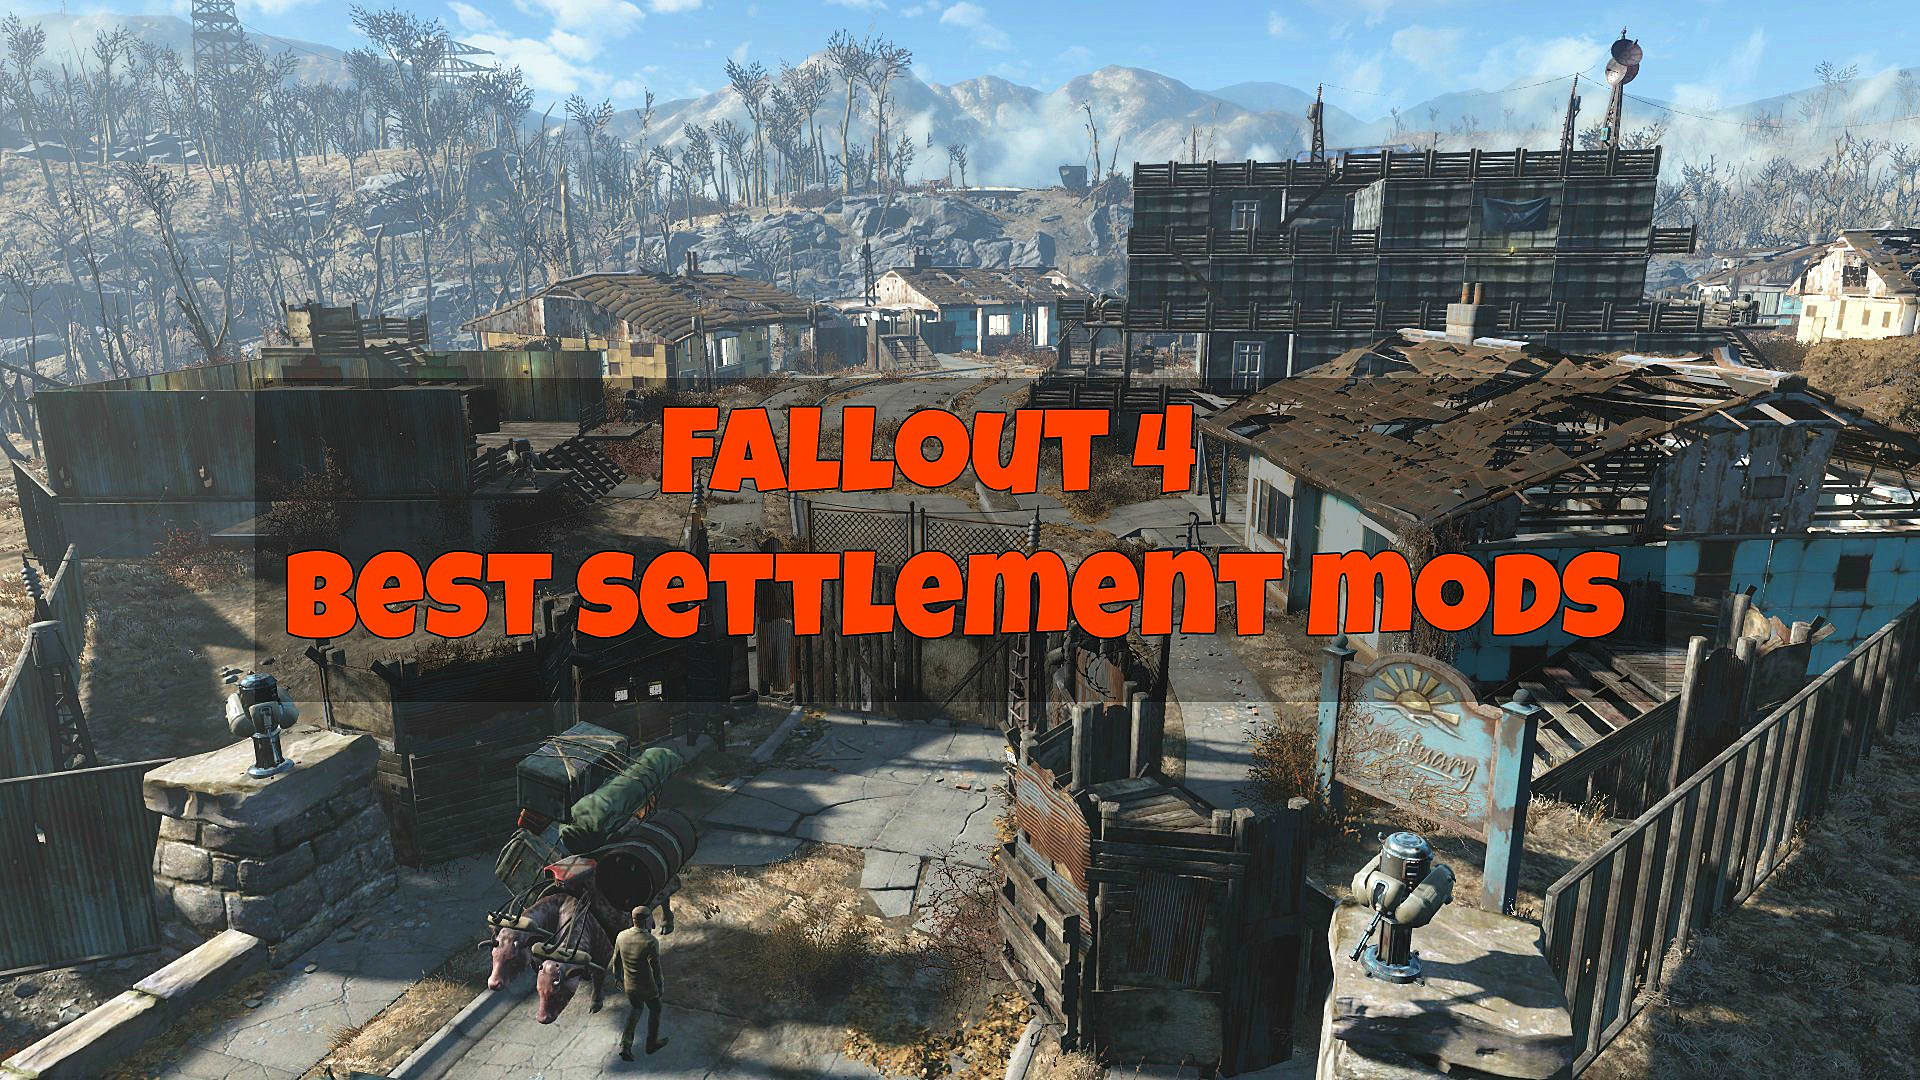 Fallout 4 Settlement Mods You Need To Install | Fallout 4